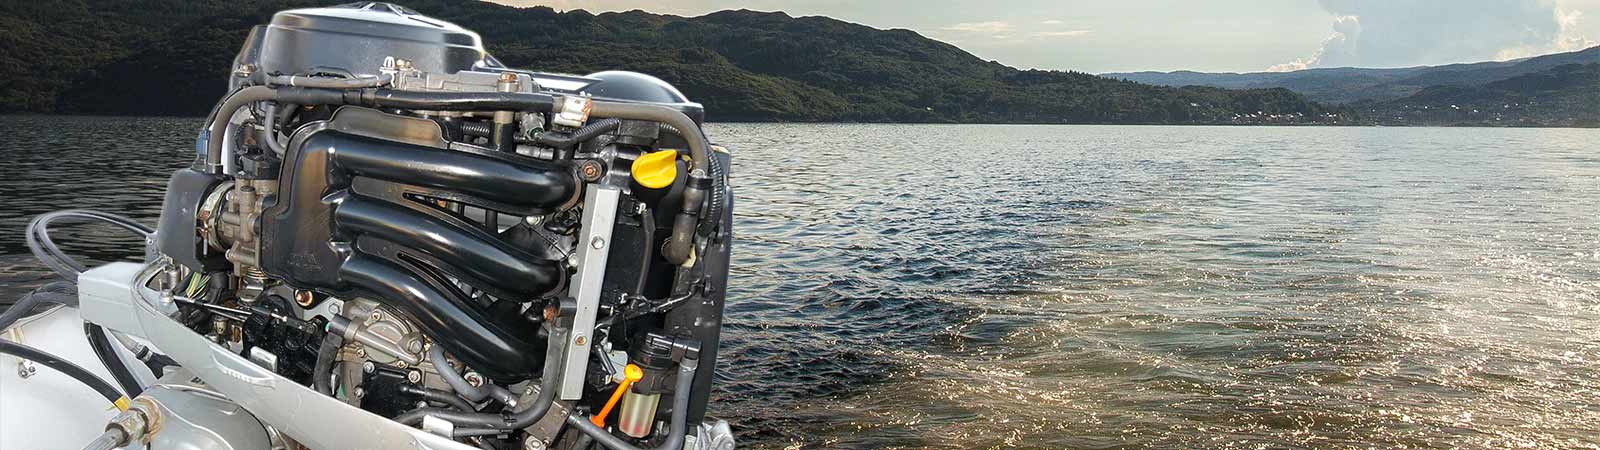 outboard motor repairs and servicing